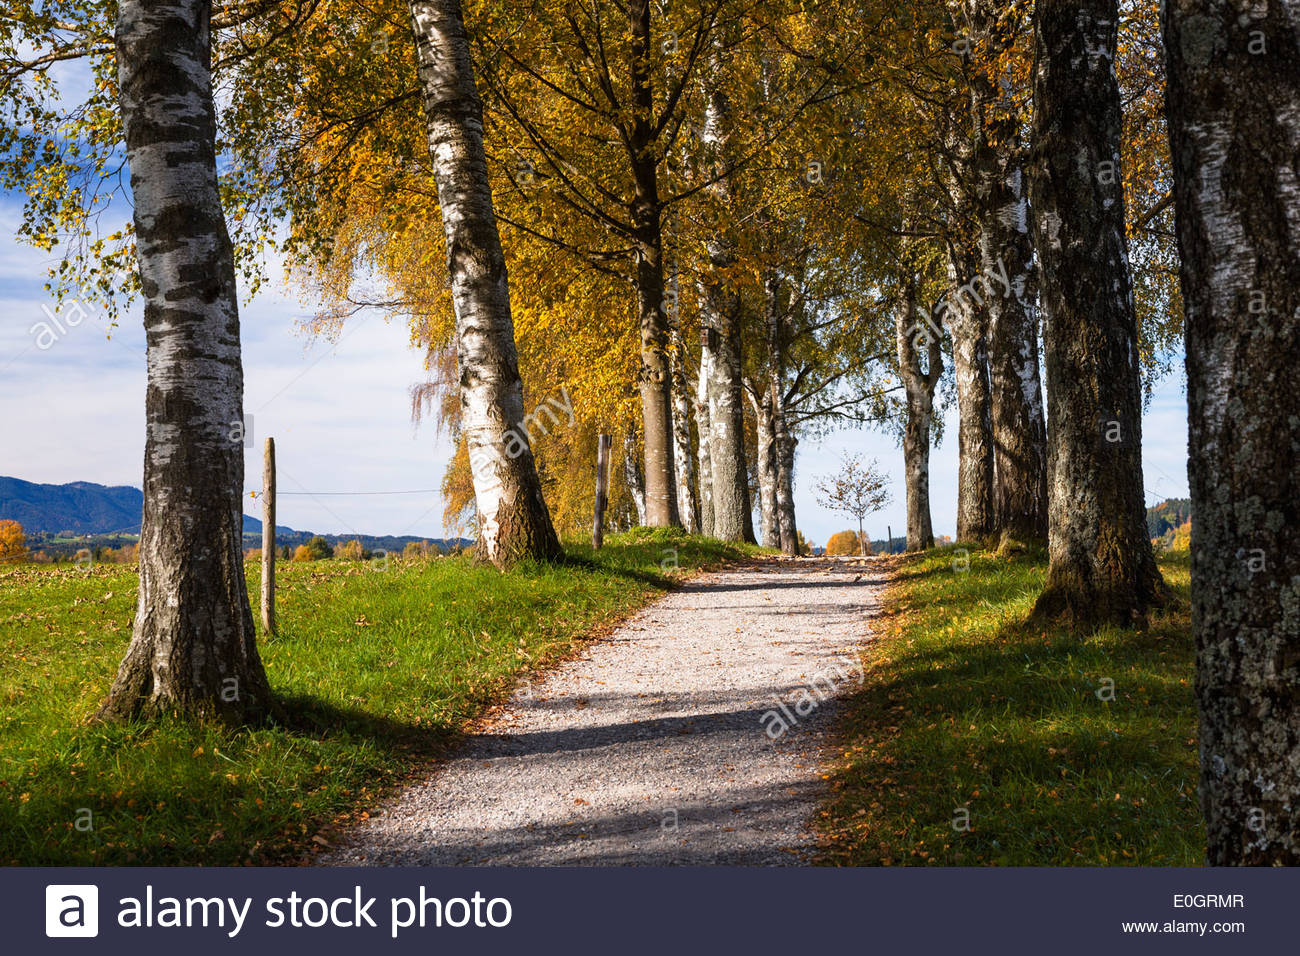 Birch-alley in autumn near Uffing at lake Staffelsee, Upper Bavaria, Bavaria, Germany - Stock Image